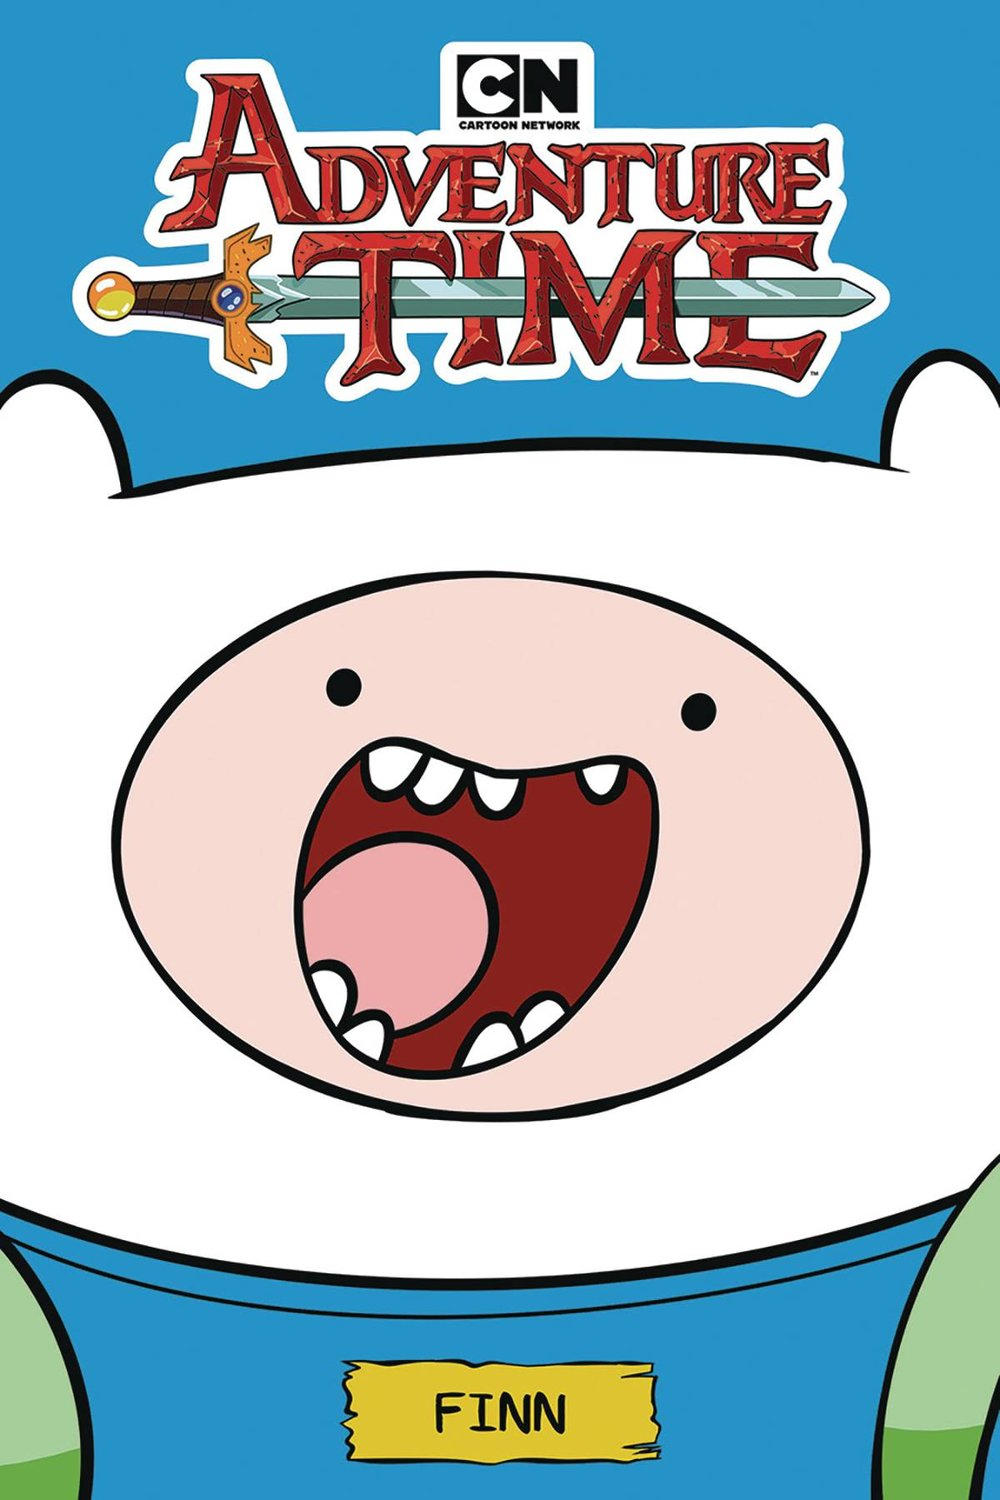 ADVENTURE TIME FINN GN.jpg